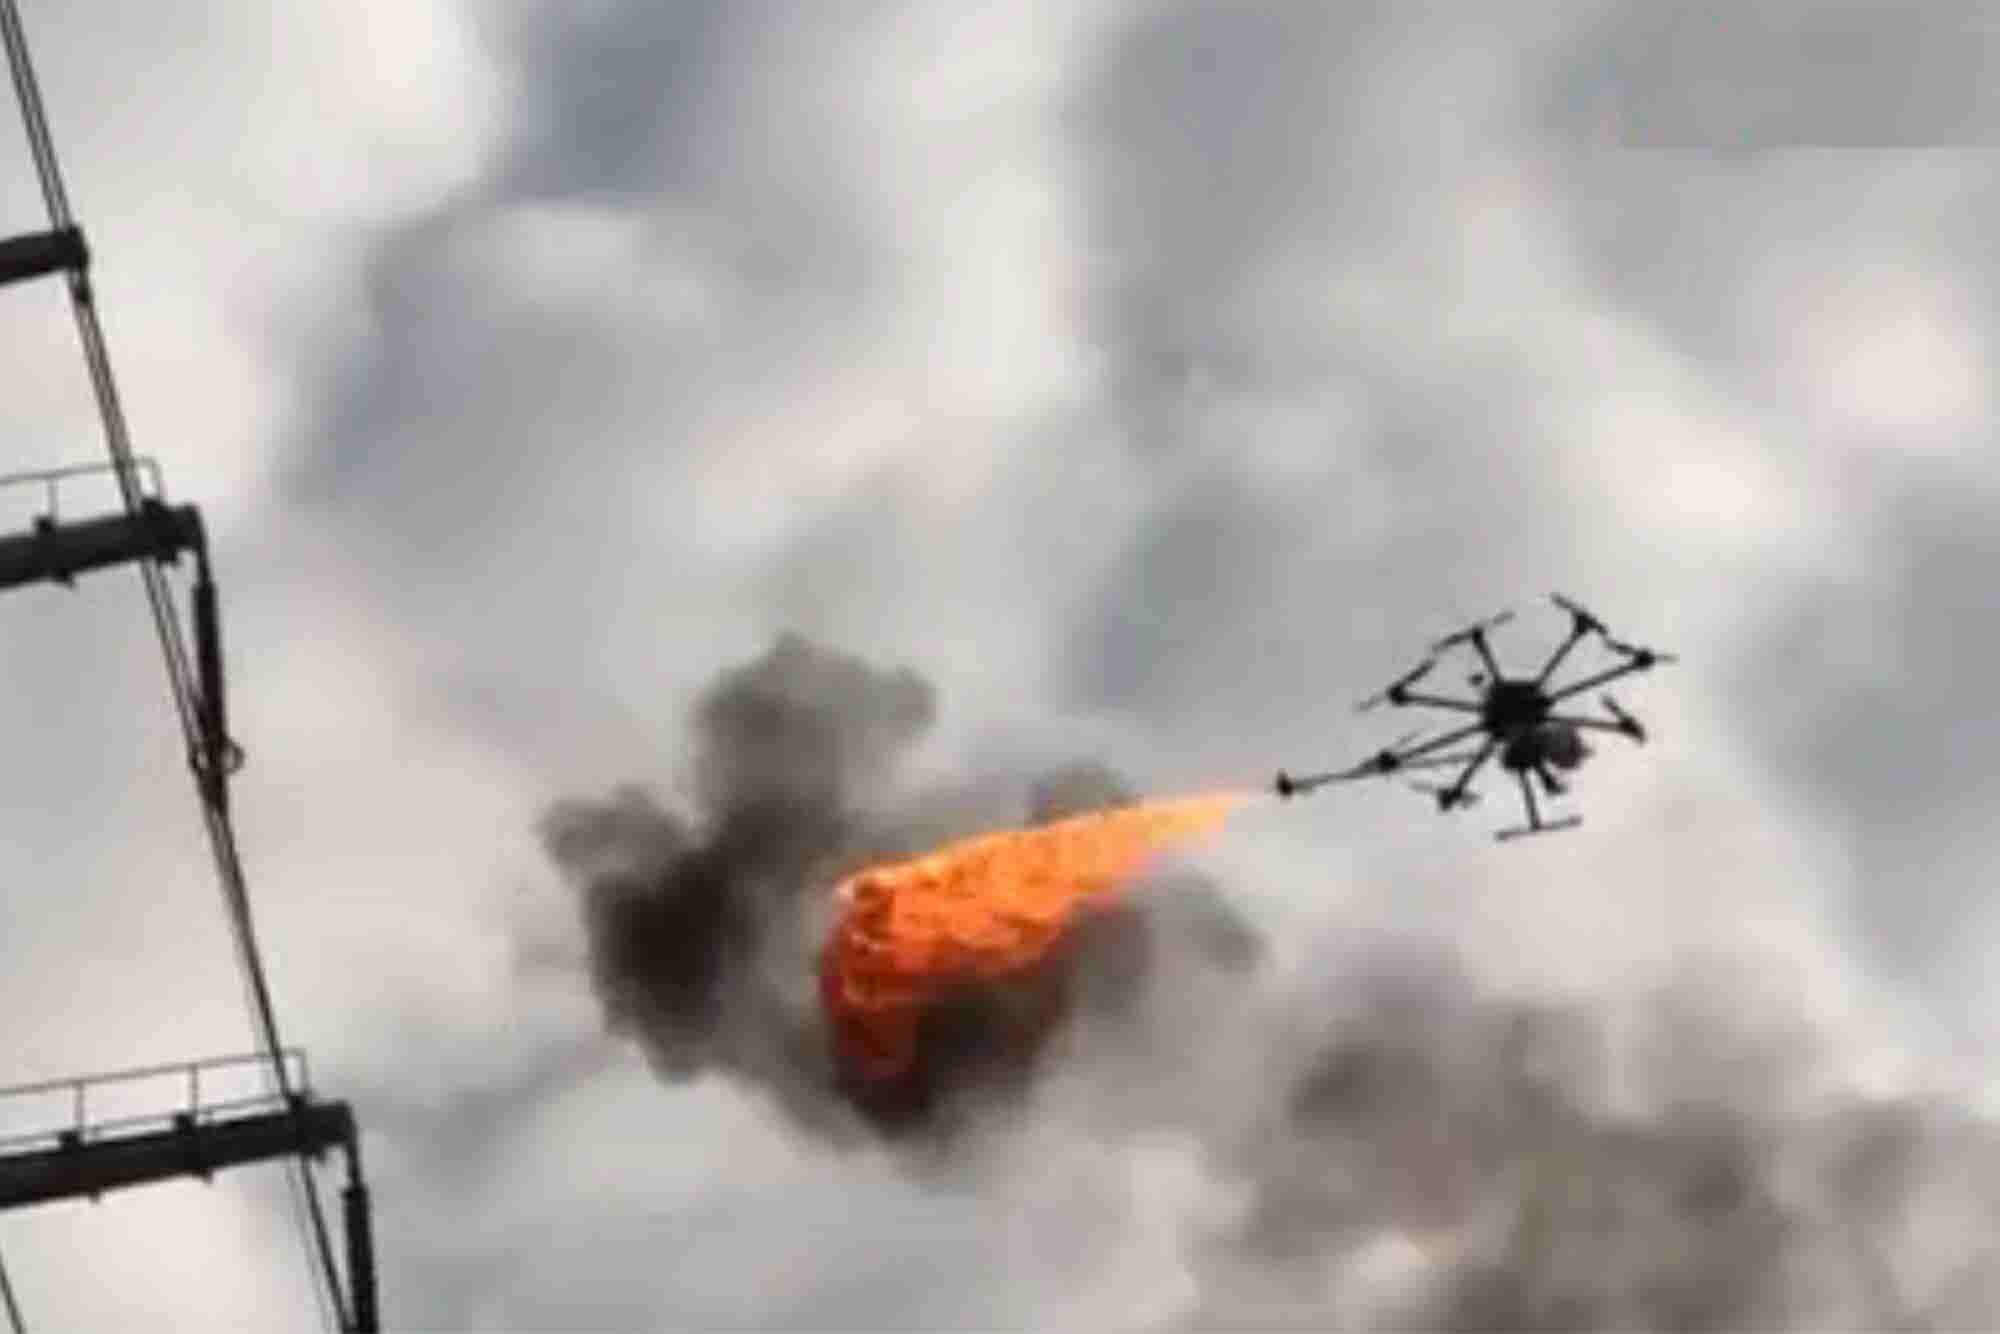 You'll Never Guess What This Fire-Spitting Drone Is Used For